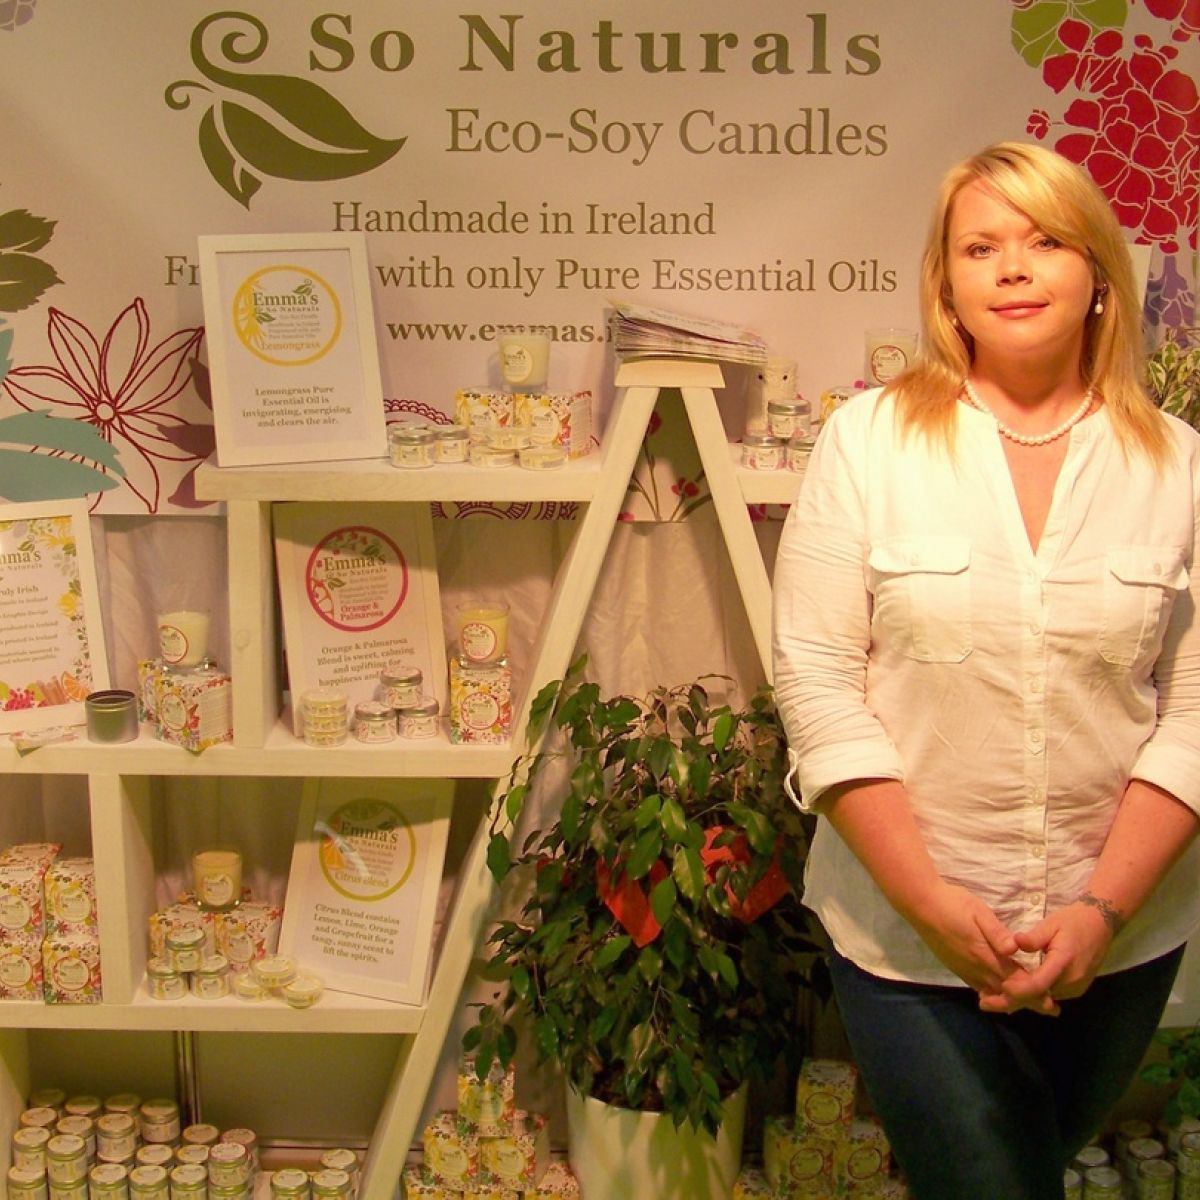 Chemical-free candles light up Irish and European markets